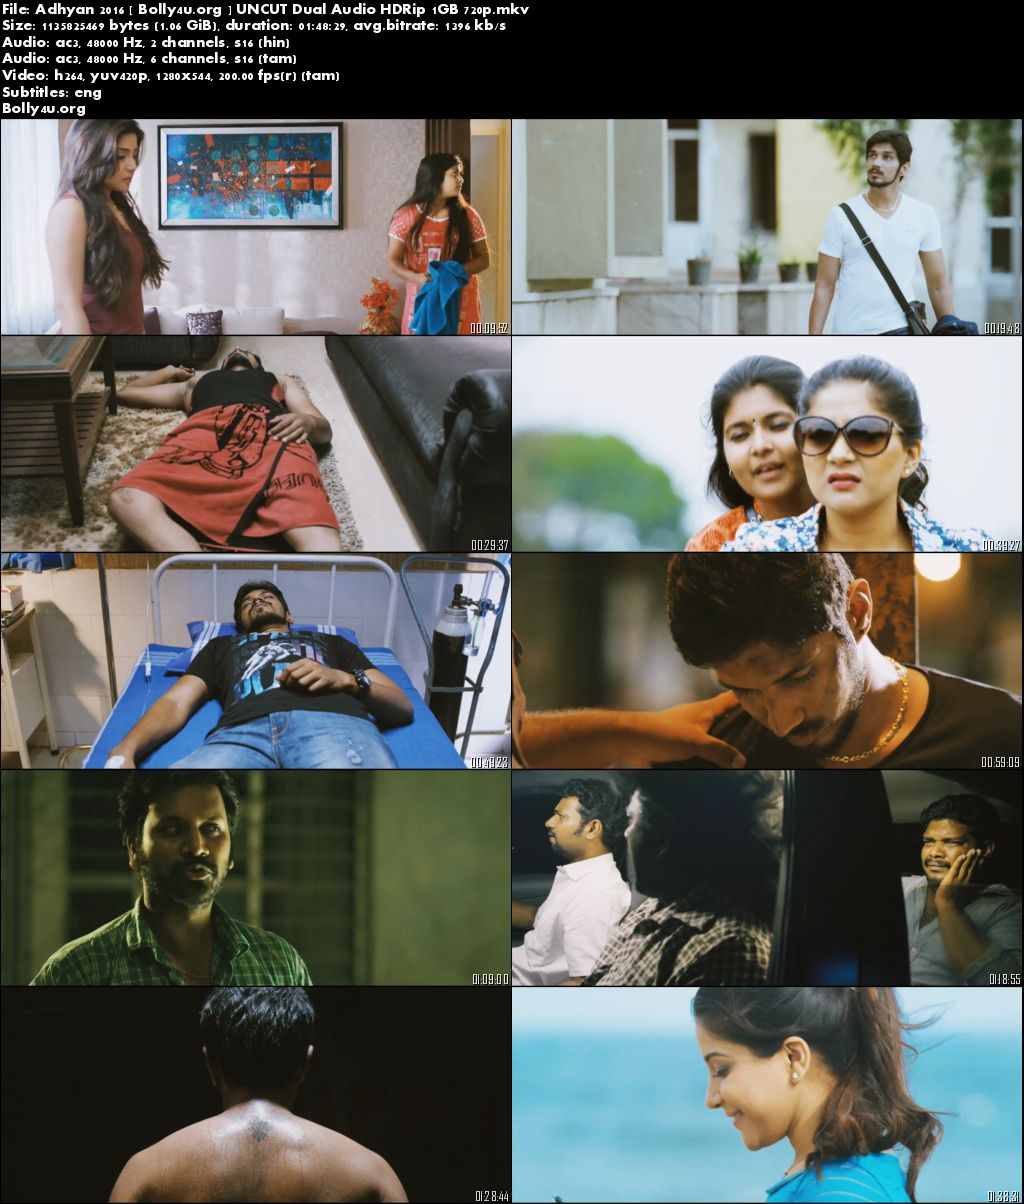 Adhyan 2016 HDRip Hindi 350MB UNCUT Dual Audio 480p Download